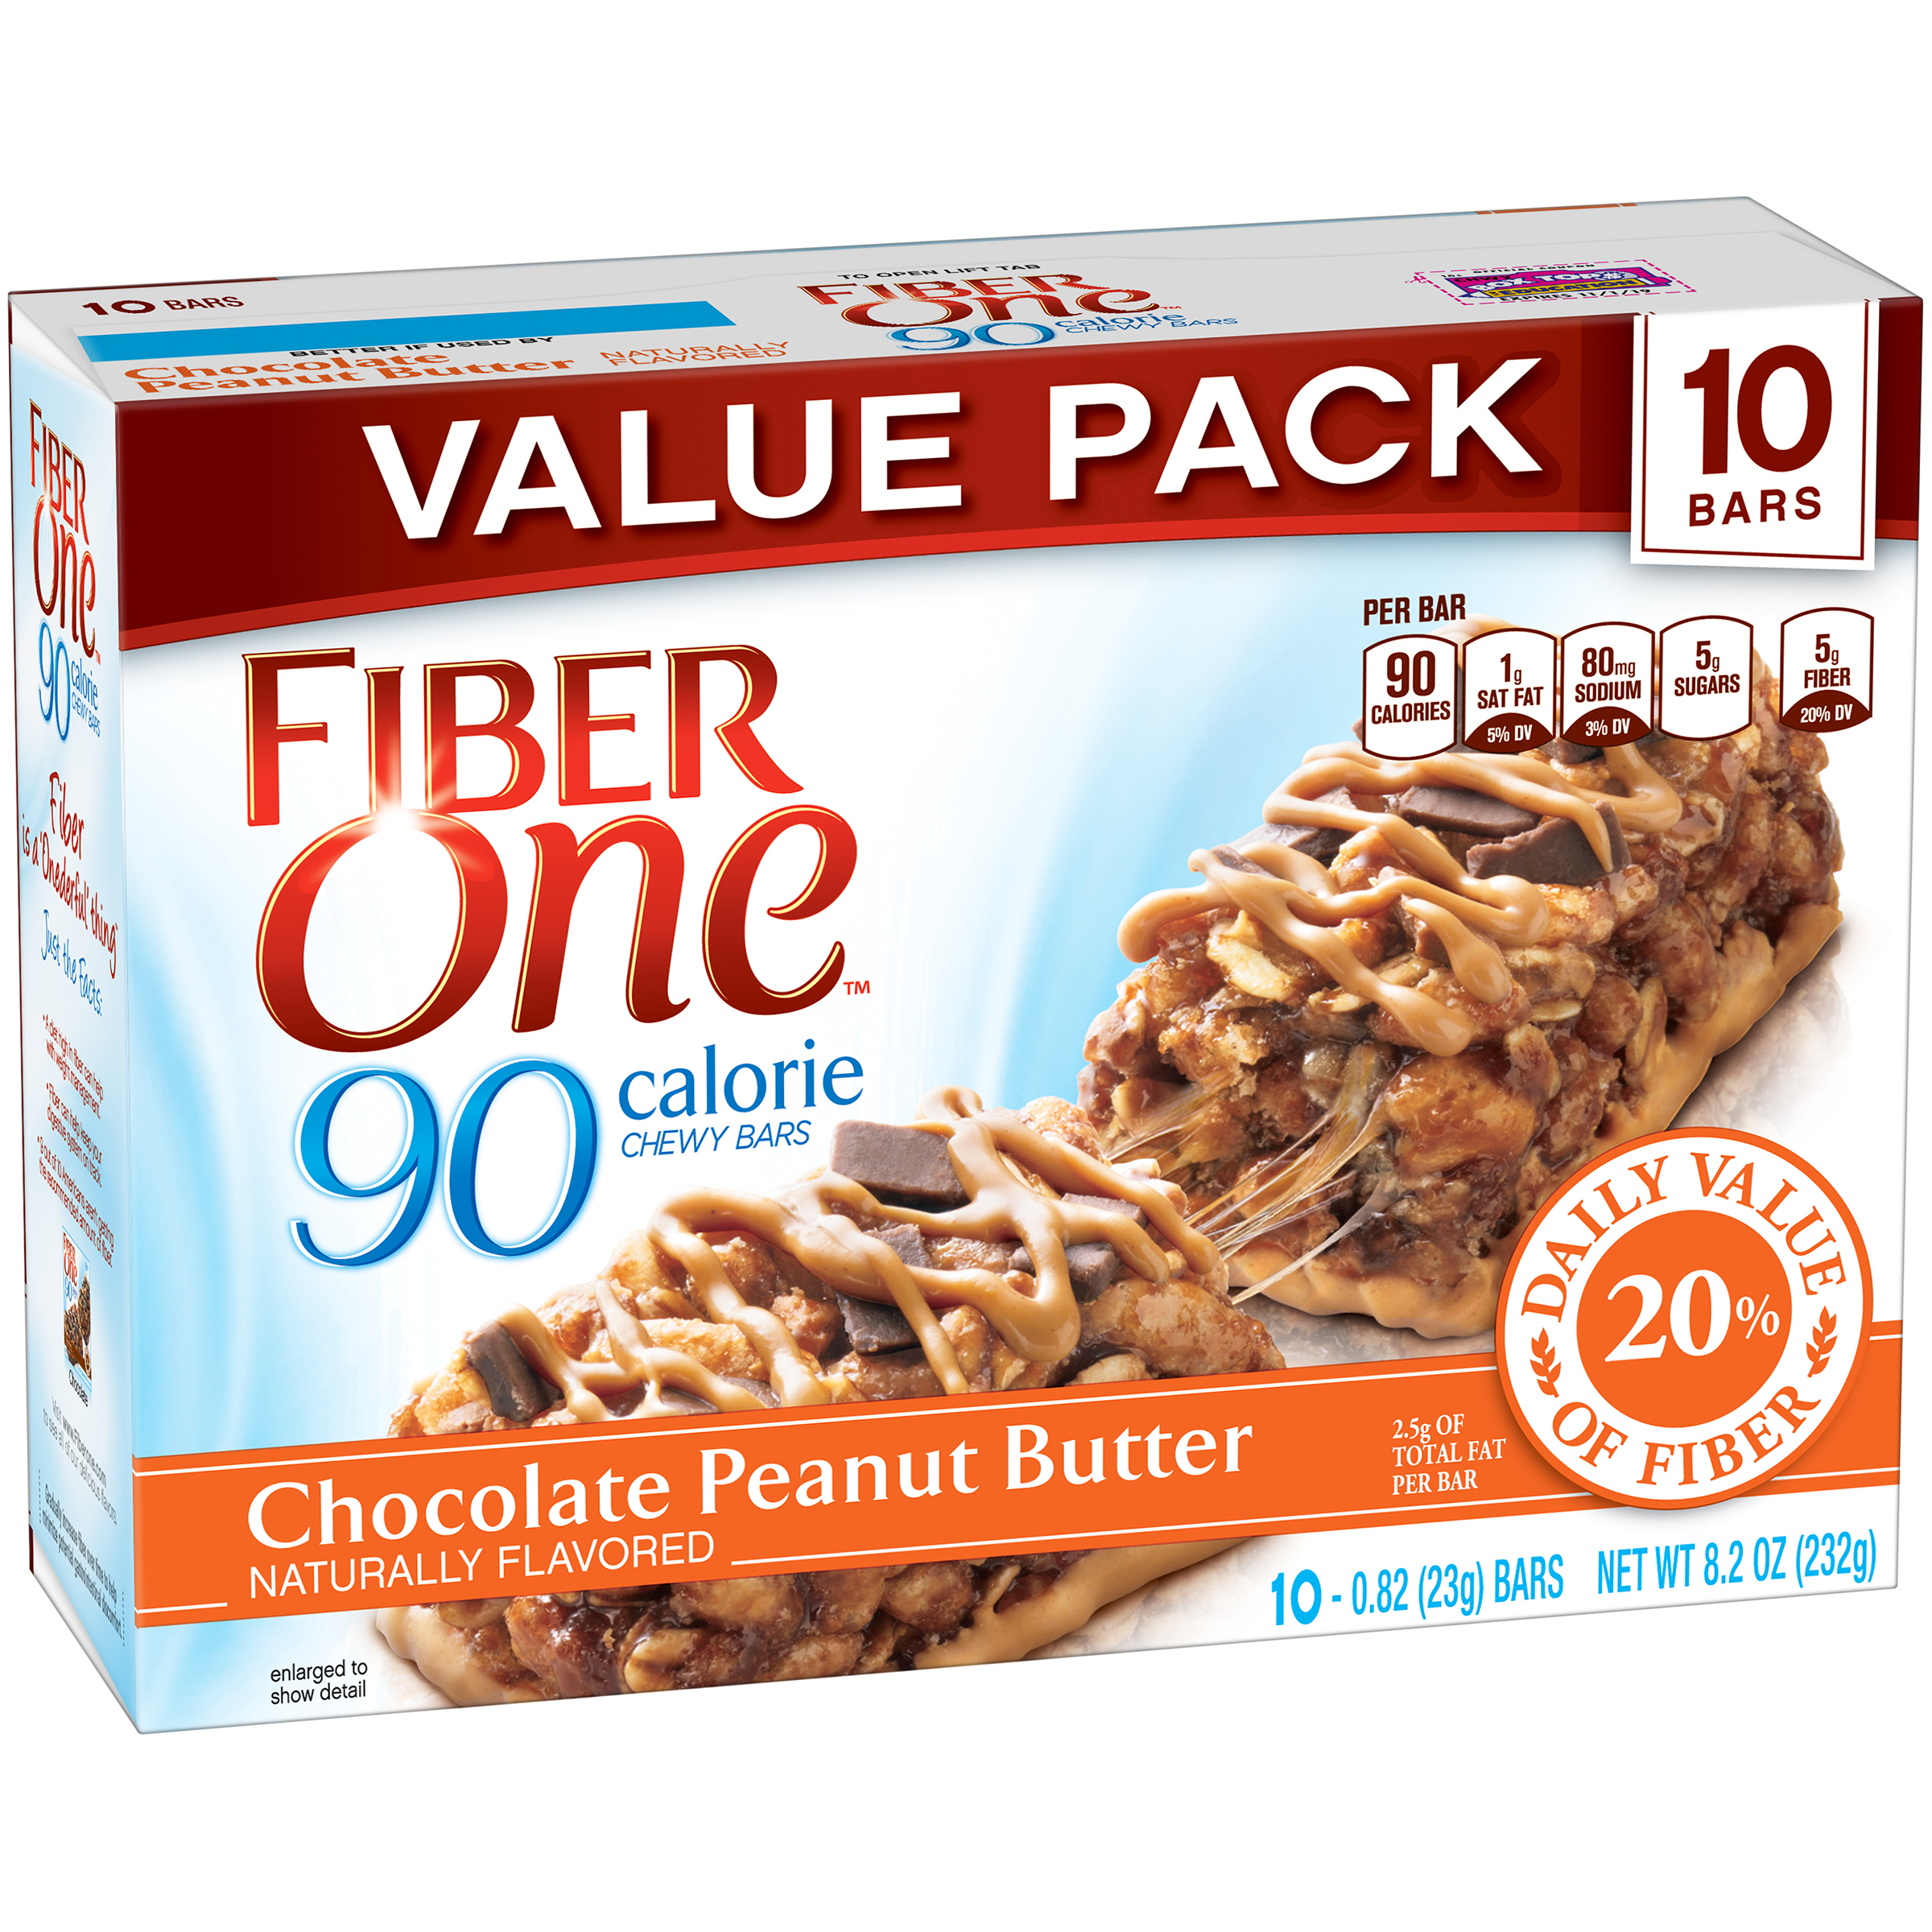 Fiber One��� 90 Calorie Chocolate Peanut Butter Chewy Bars 10 ct Box